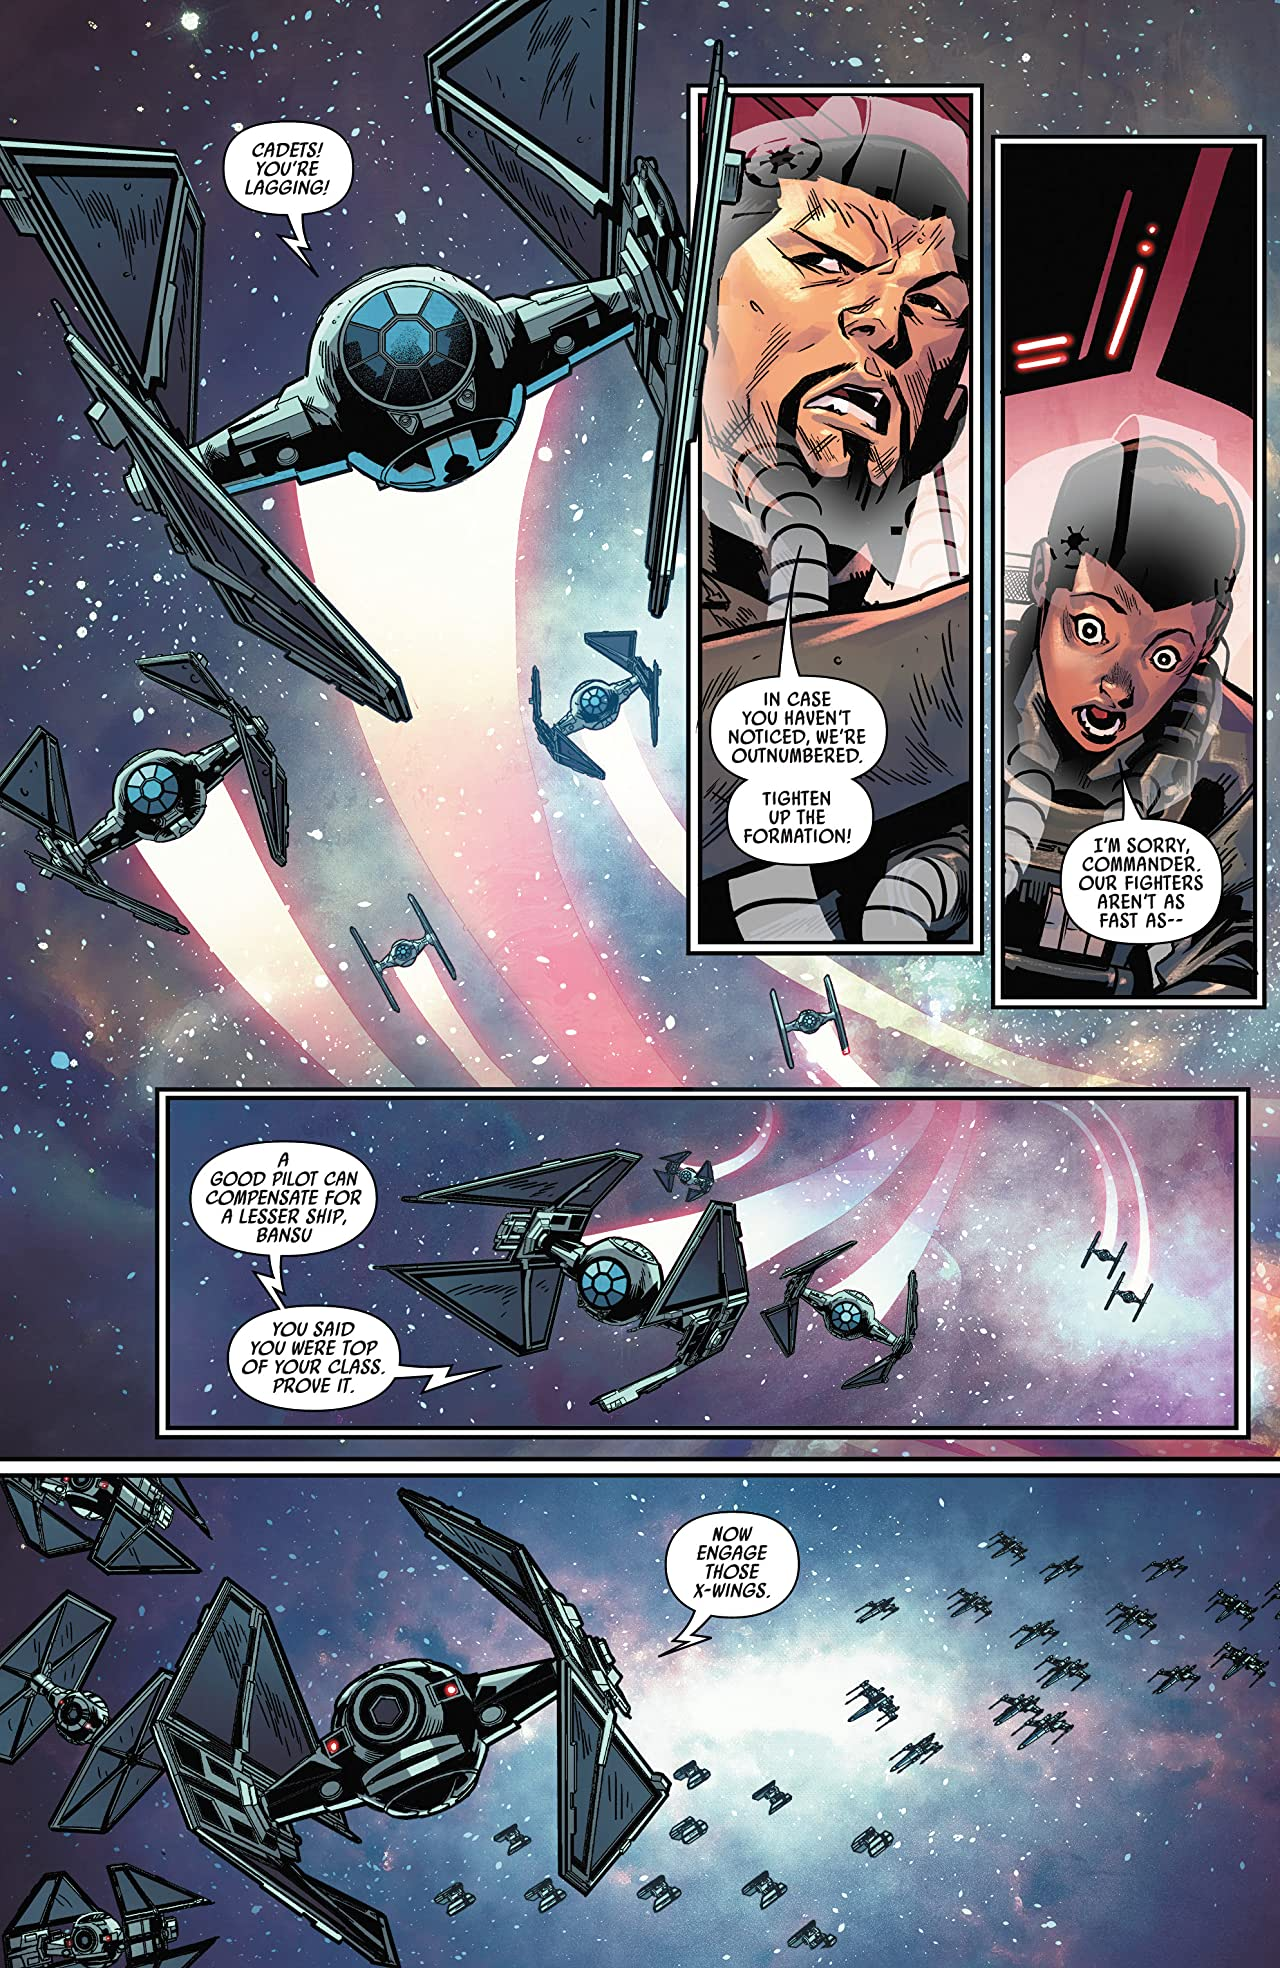 Star Wars: Tie Fighter (2019) #5 (of 5)